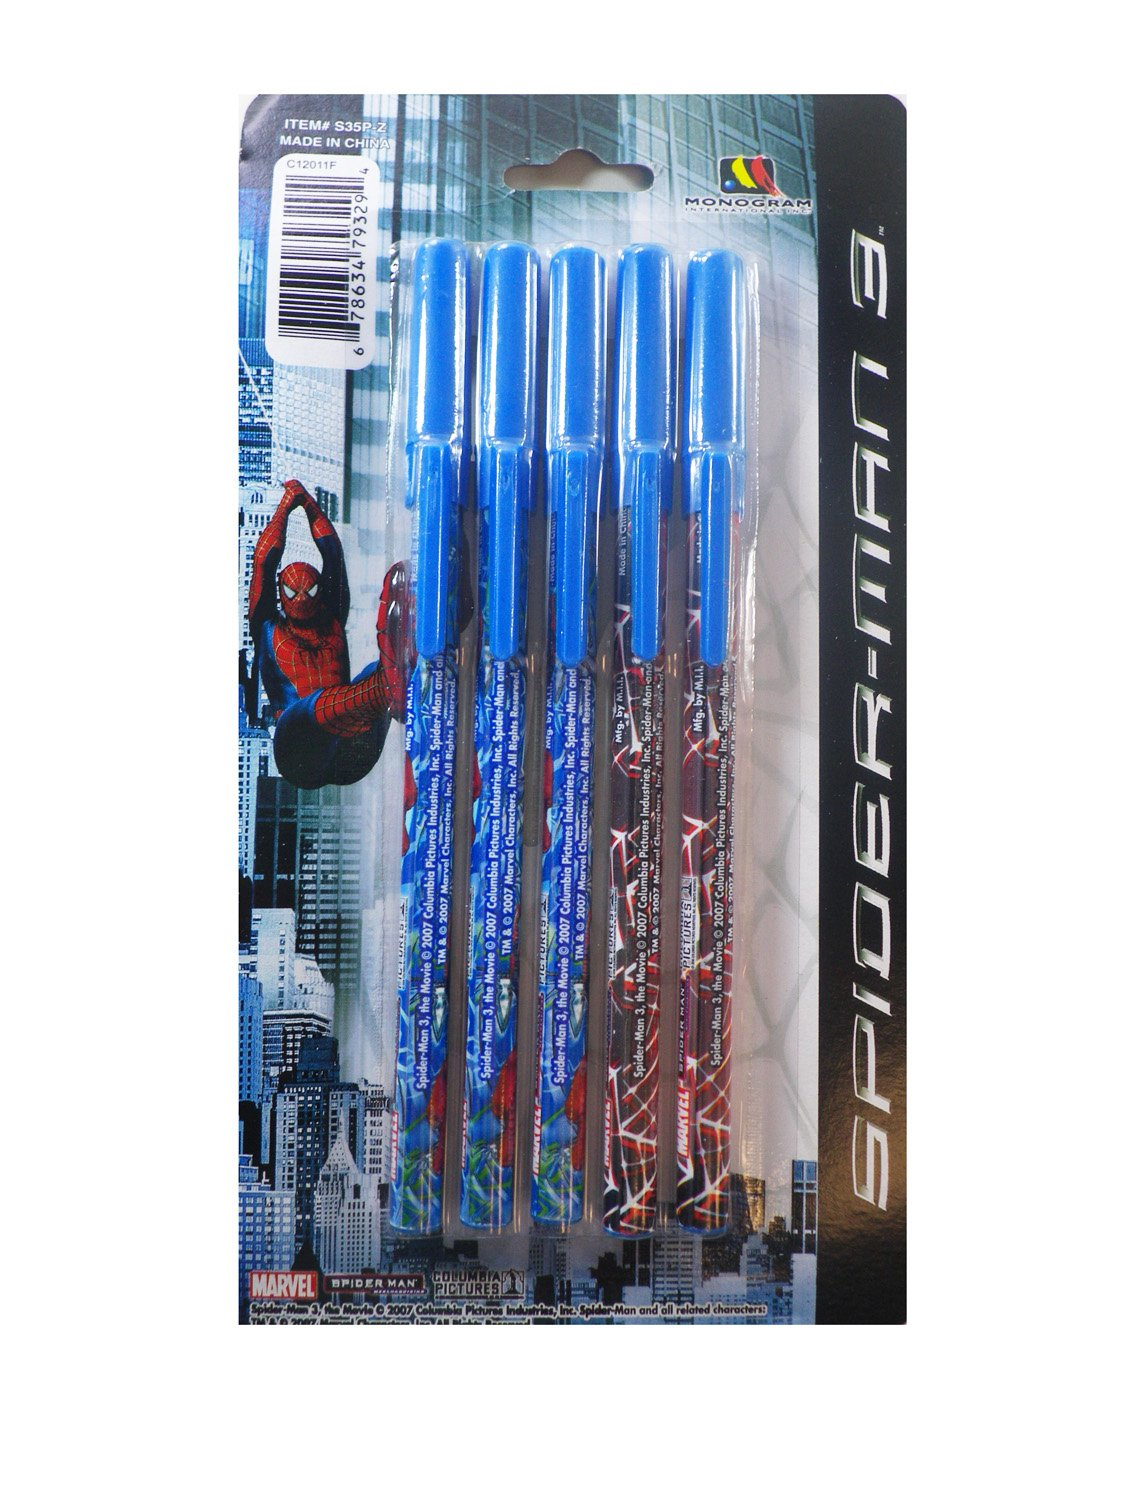 Amazon.com: Marvel 5 Pack Spiderman Pens - Spiderman ...